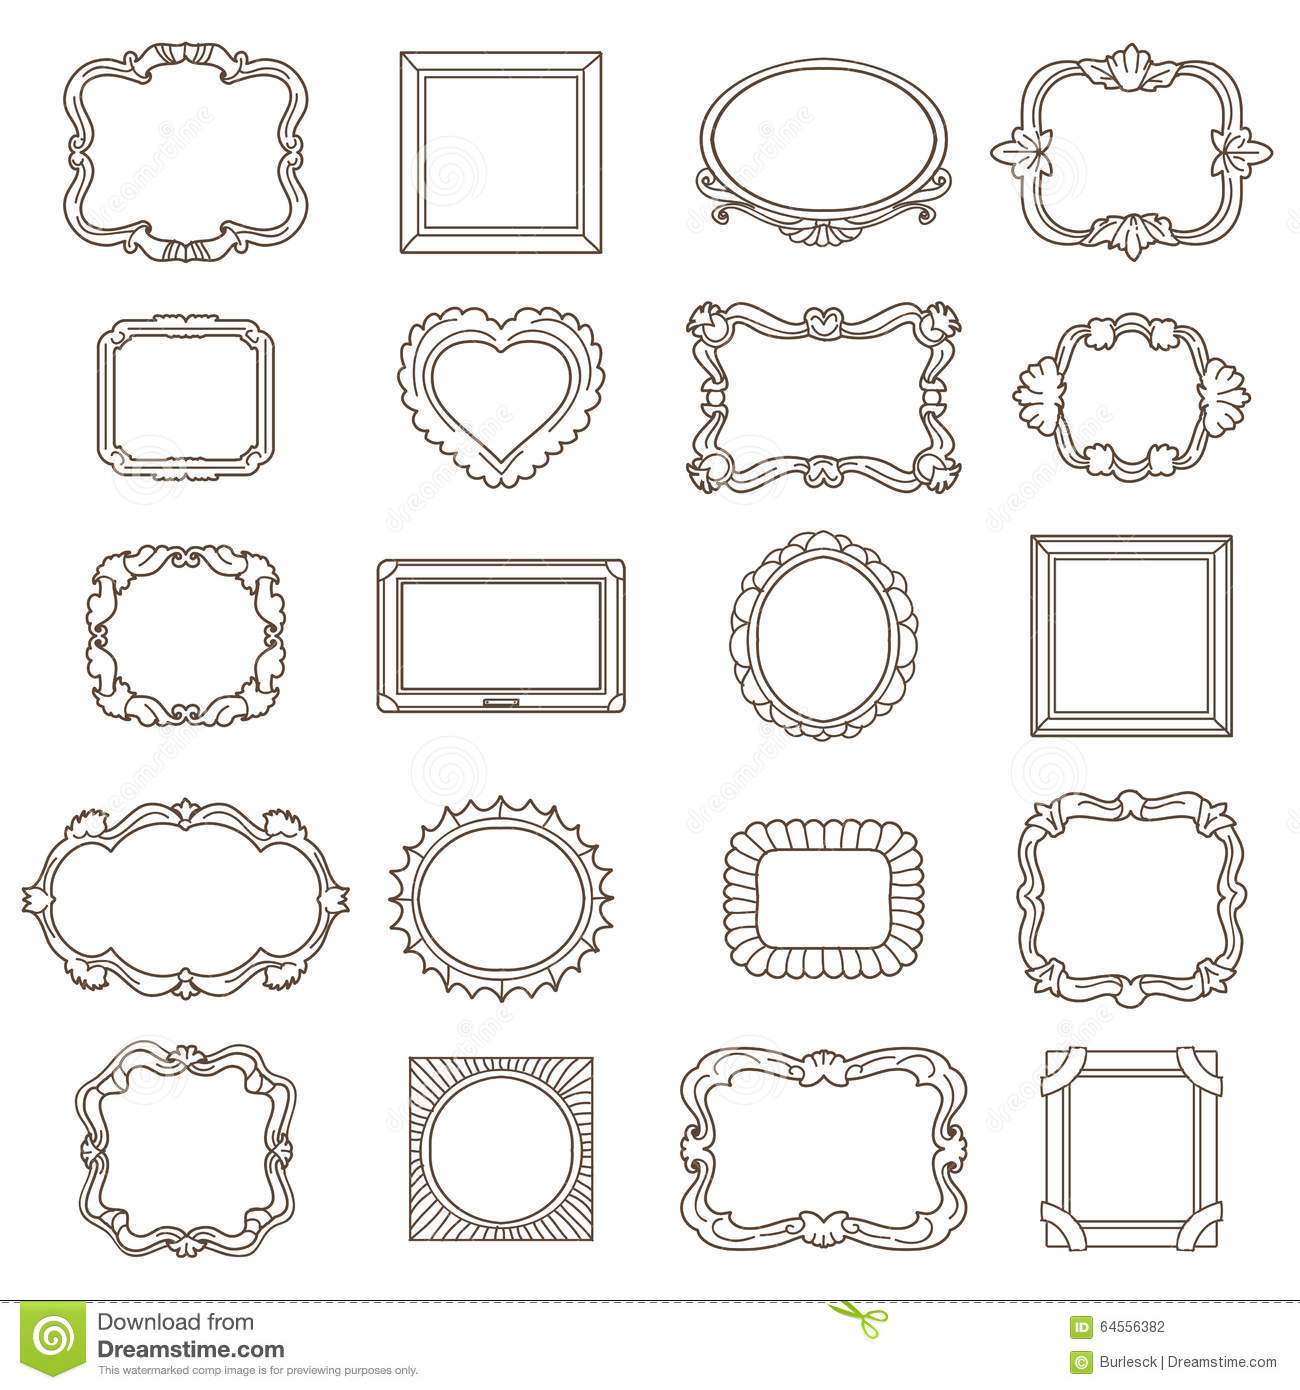 vintage hand drawn frames for greetings and stock vector clipart for invitations free download clip art for invitation to shipwrecked vbs